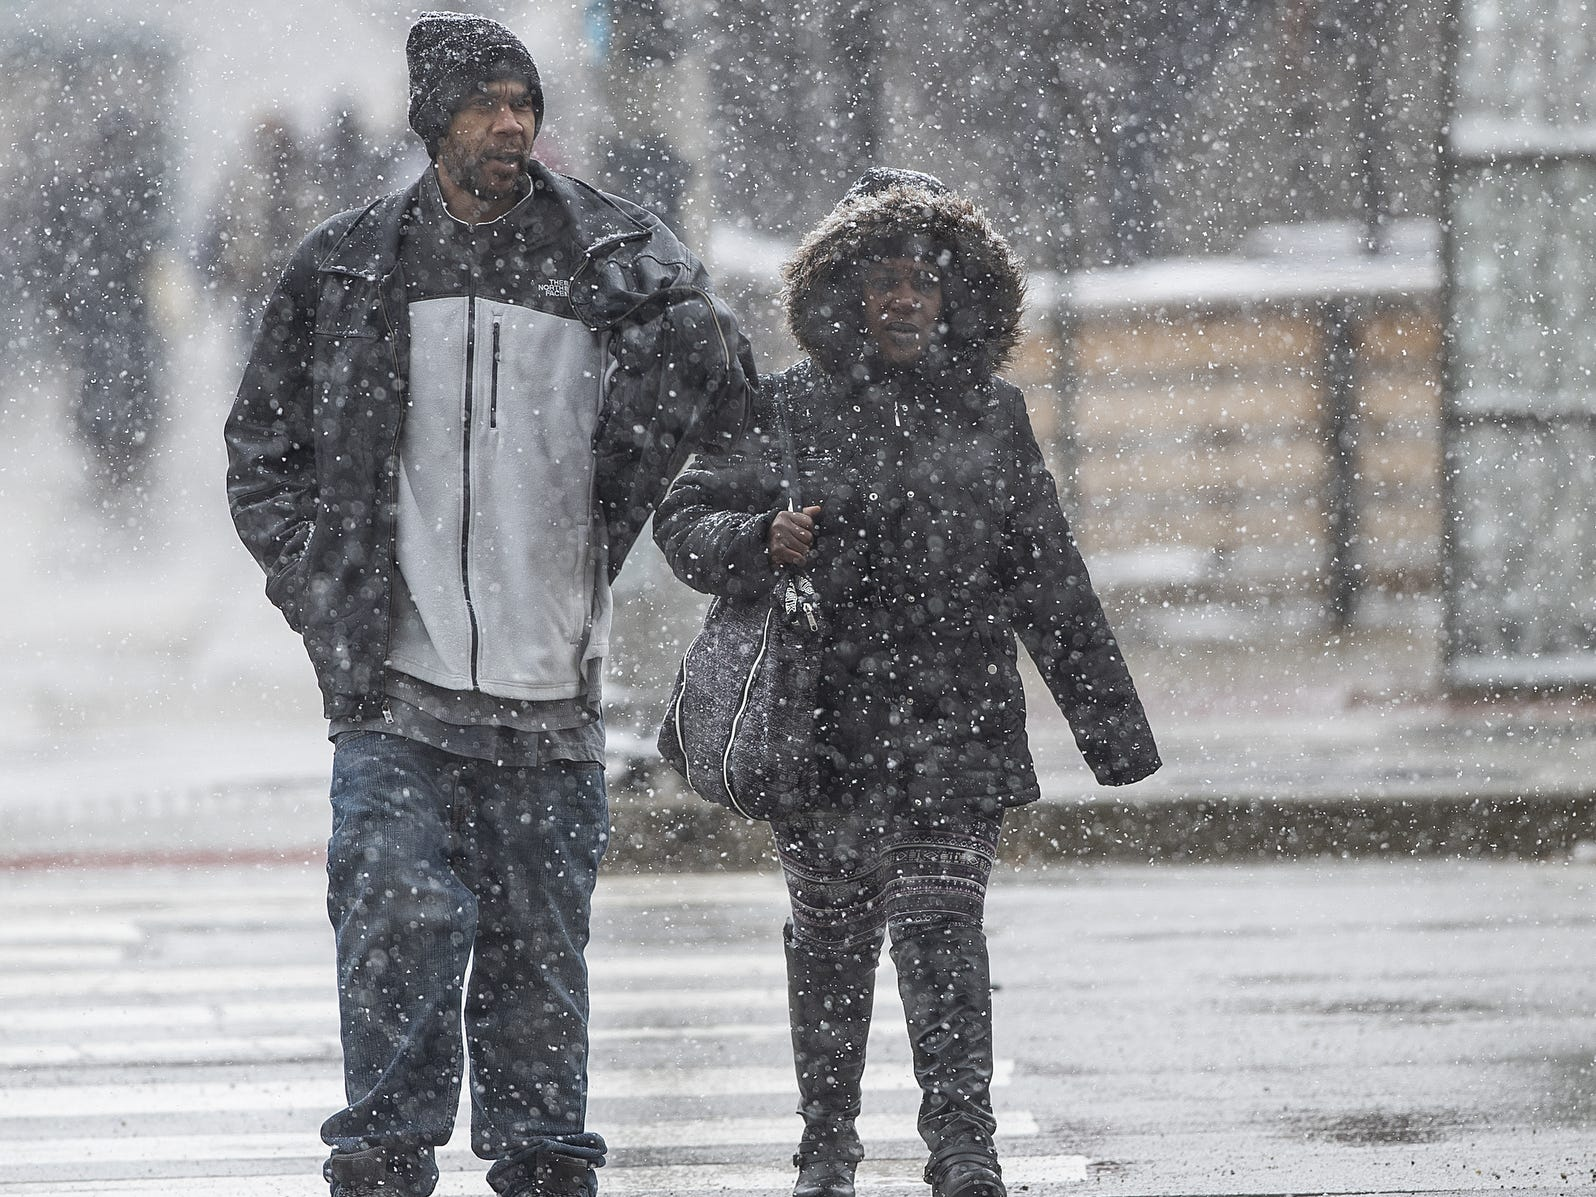 Pedestrians make their way through a bout of Sunday afternoon snow in Indianapolis on March 3, 2019. According to The Weather Channel, a chance of snow does not return until Thursday.